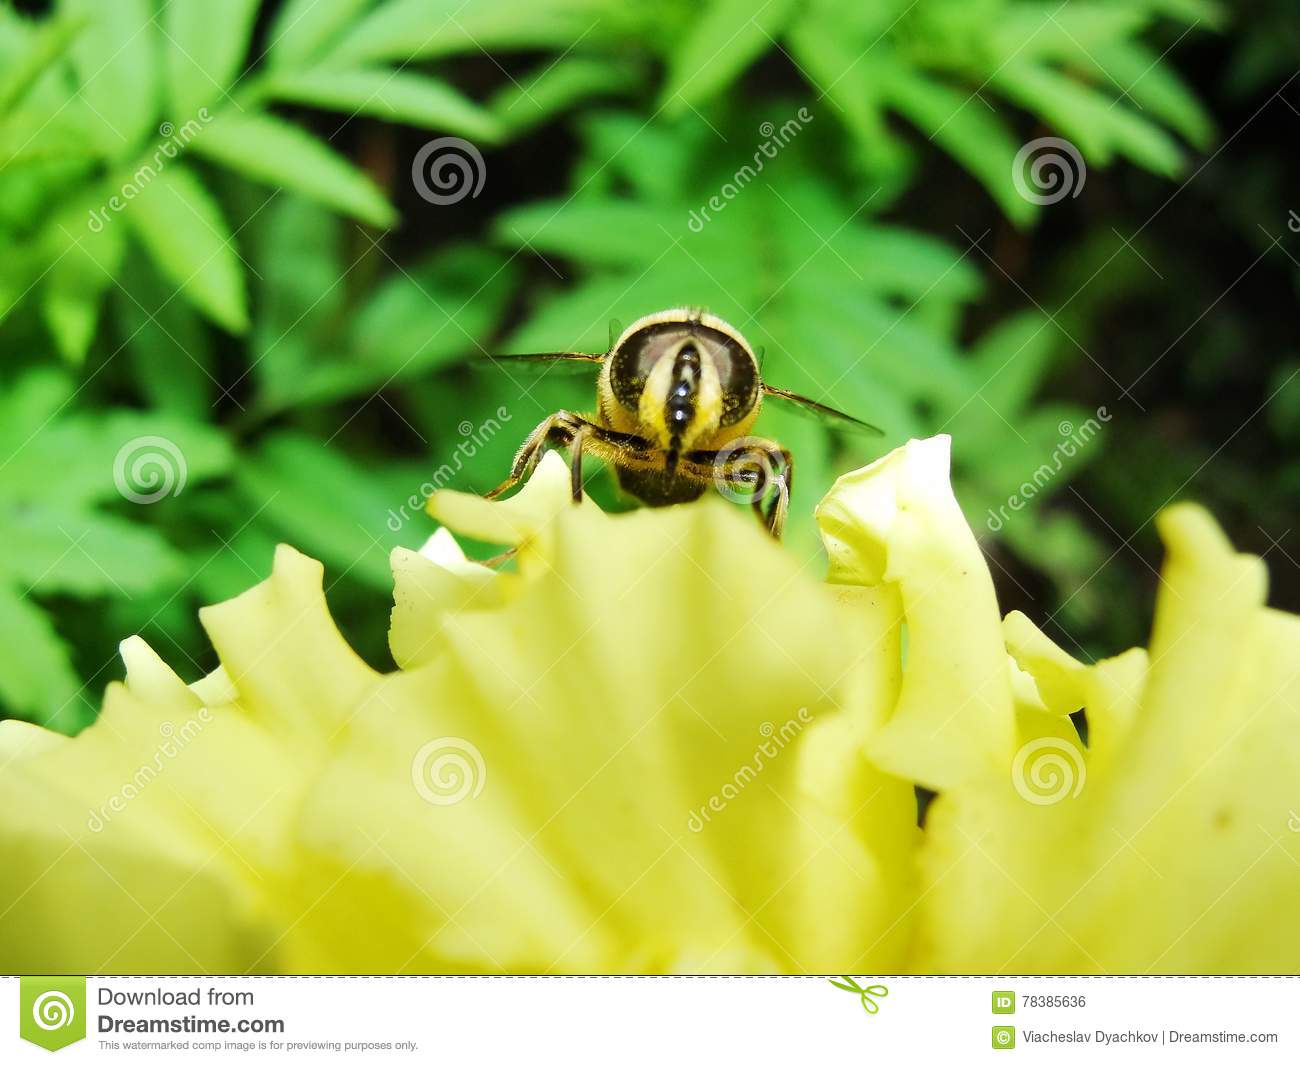 In the summer garden. wasp collects nectar on a yellow flower garden.